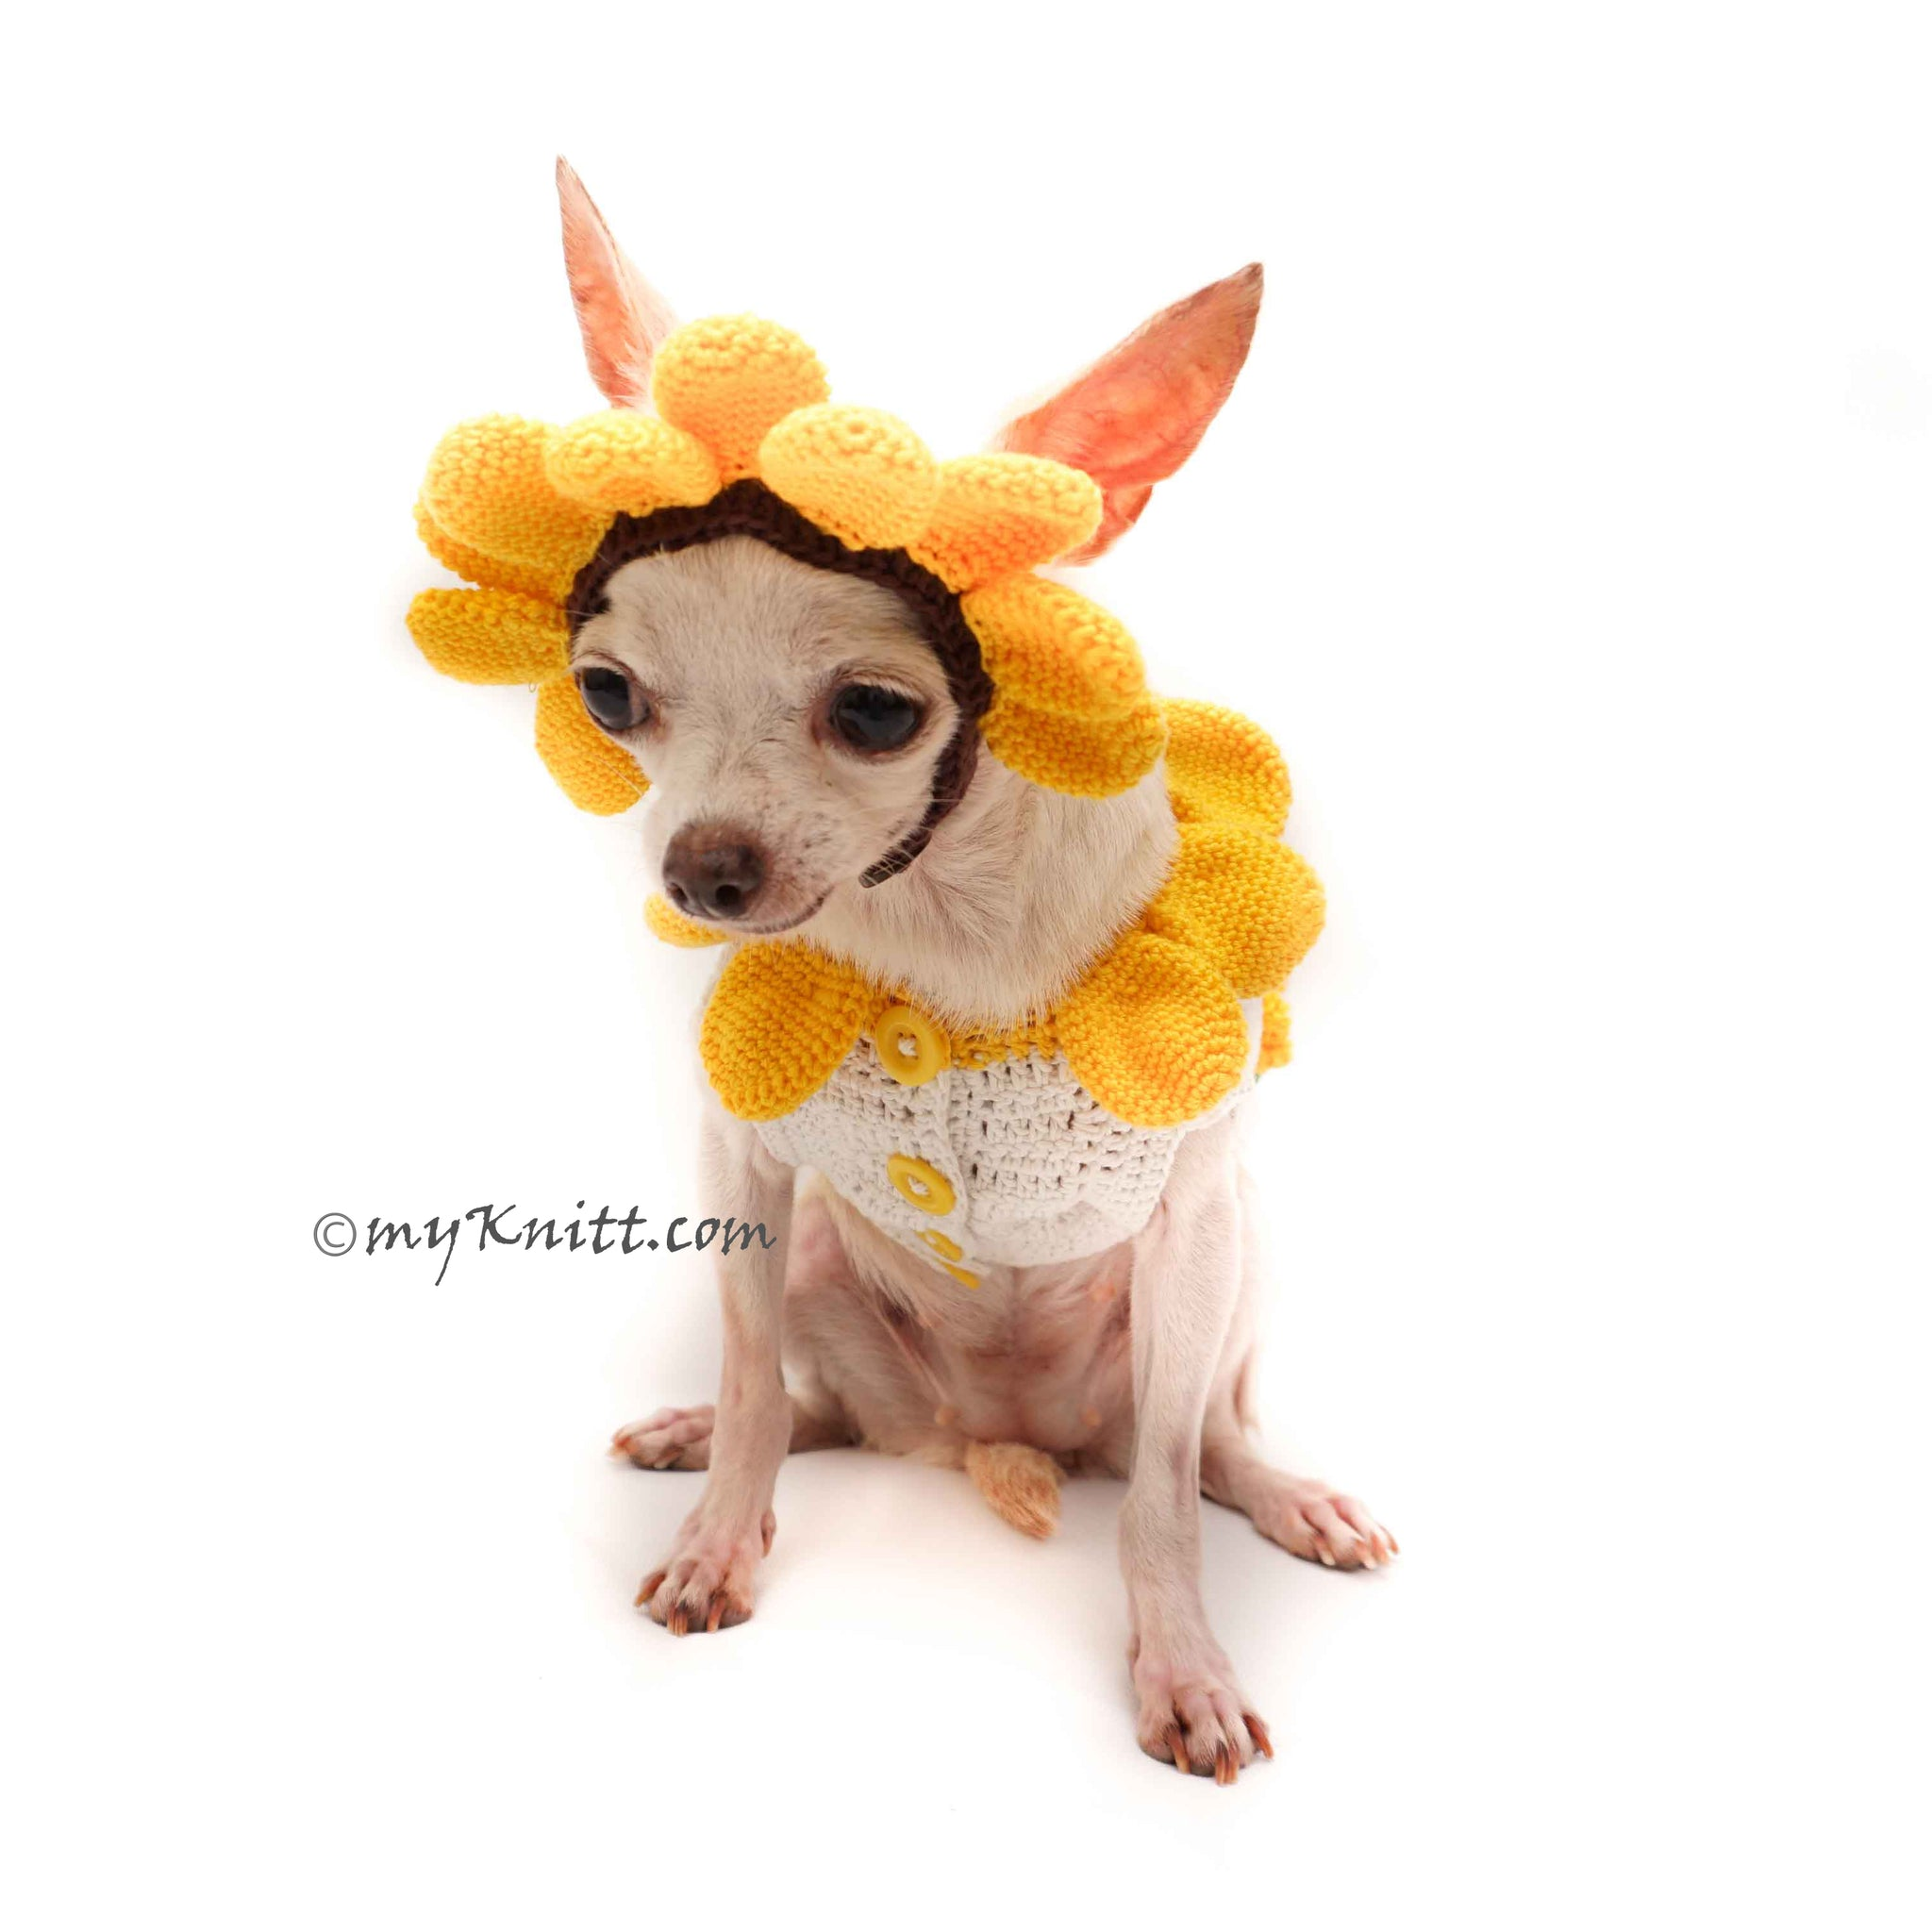 Awesome Sunflower Costume For Dogs Cute Pet Halloween Costume DF94